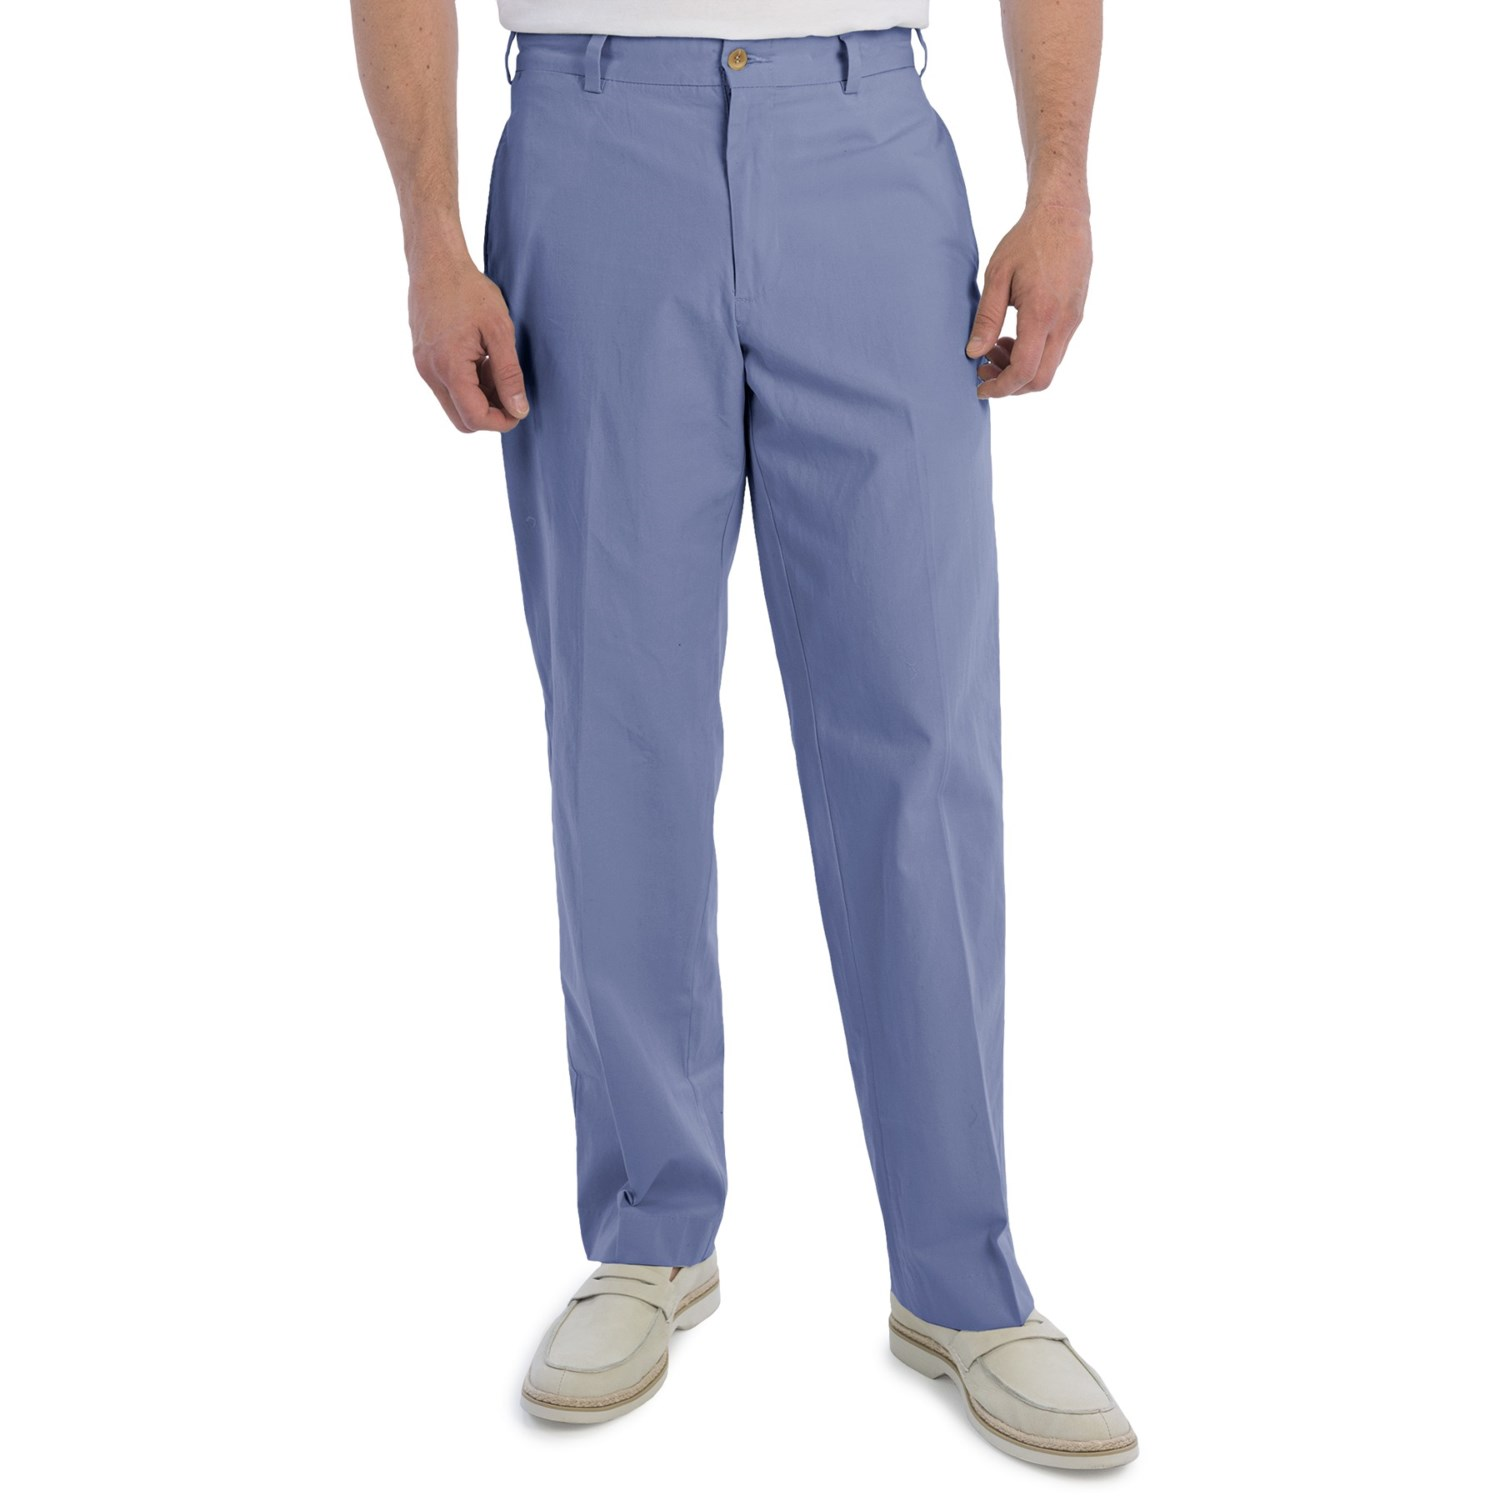 Men, meet the pleated poplin pant. Available at our own store in shades of blue, white, khaki, grey, and orange, you can do a lot with these pants—but the key to pulling them off in a complete outfit?